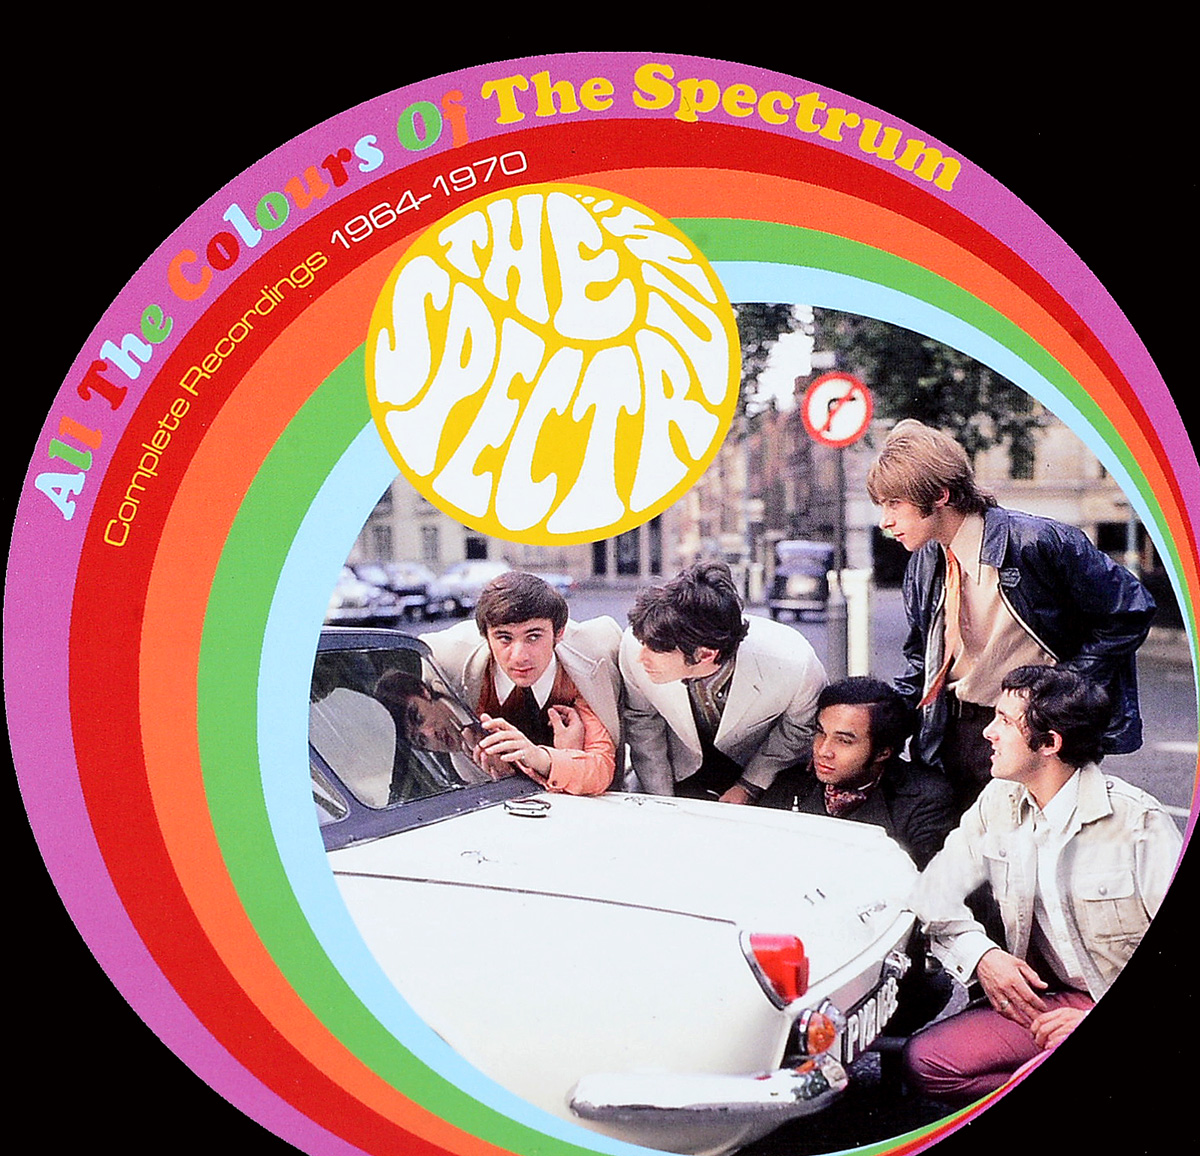 лучшая цена The Spectrum. All The Colours Of The Spectrum: Complete Recordings 1964-1970 (2 CD)